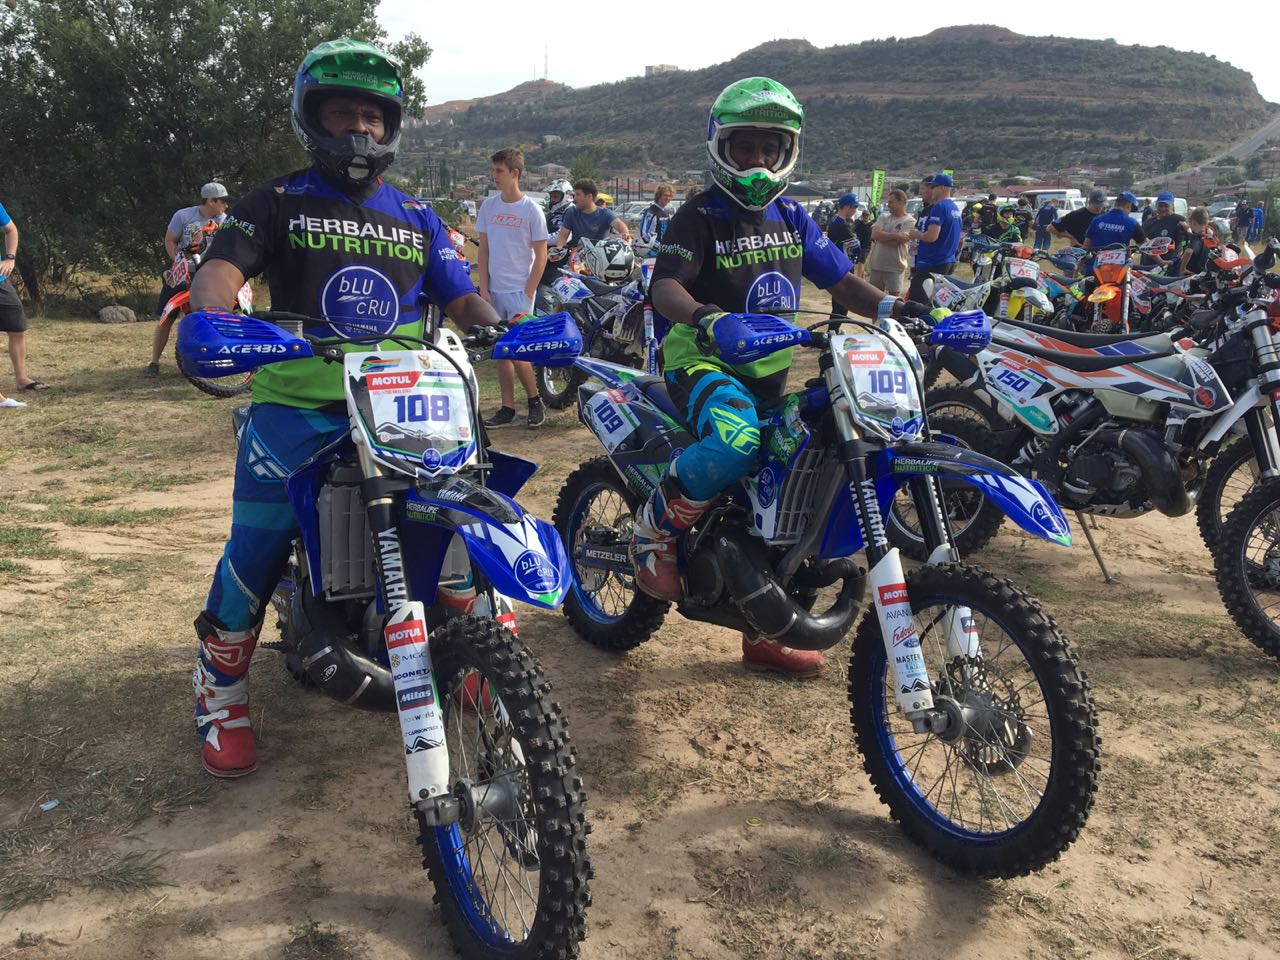 DEVELOPMENT RIDERS TAKE ON MOTHER OF HARD ENDURO